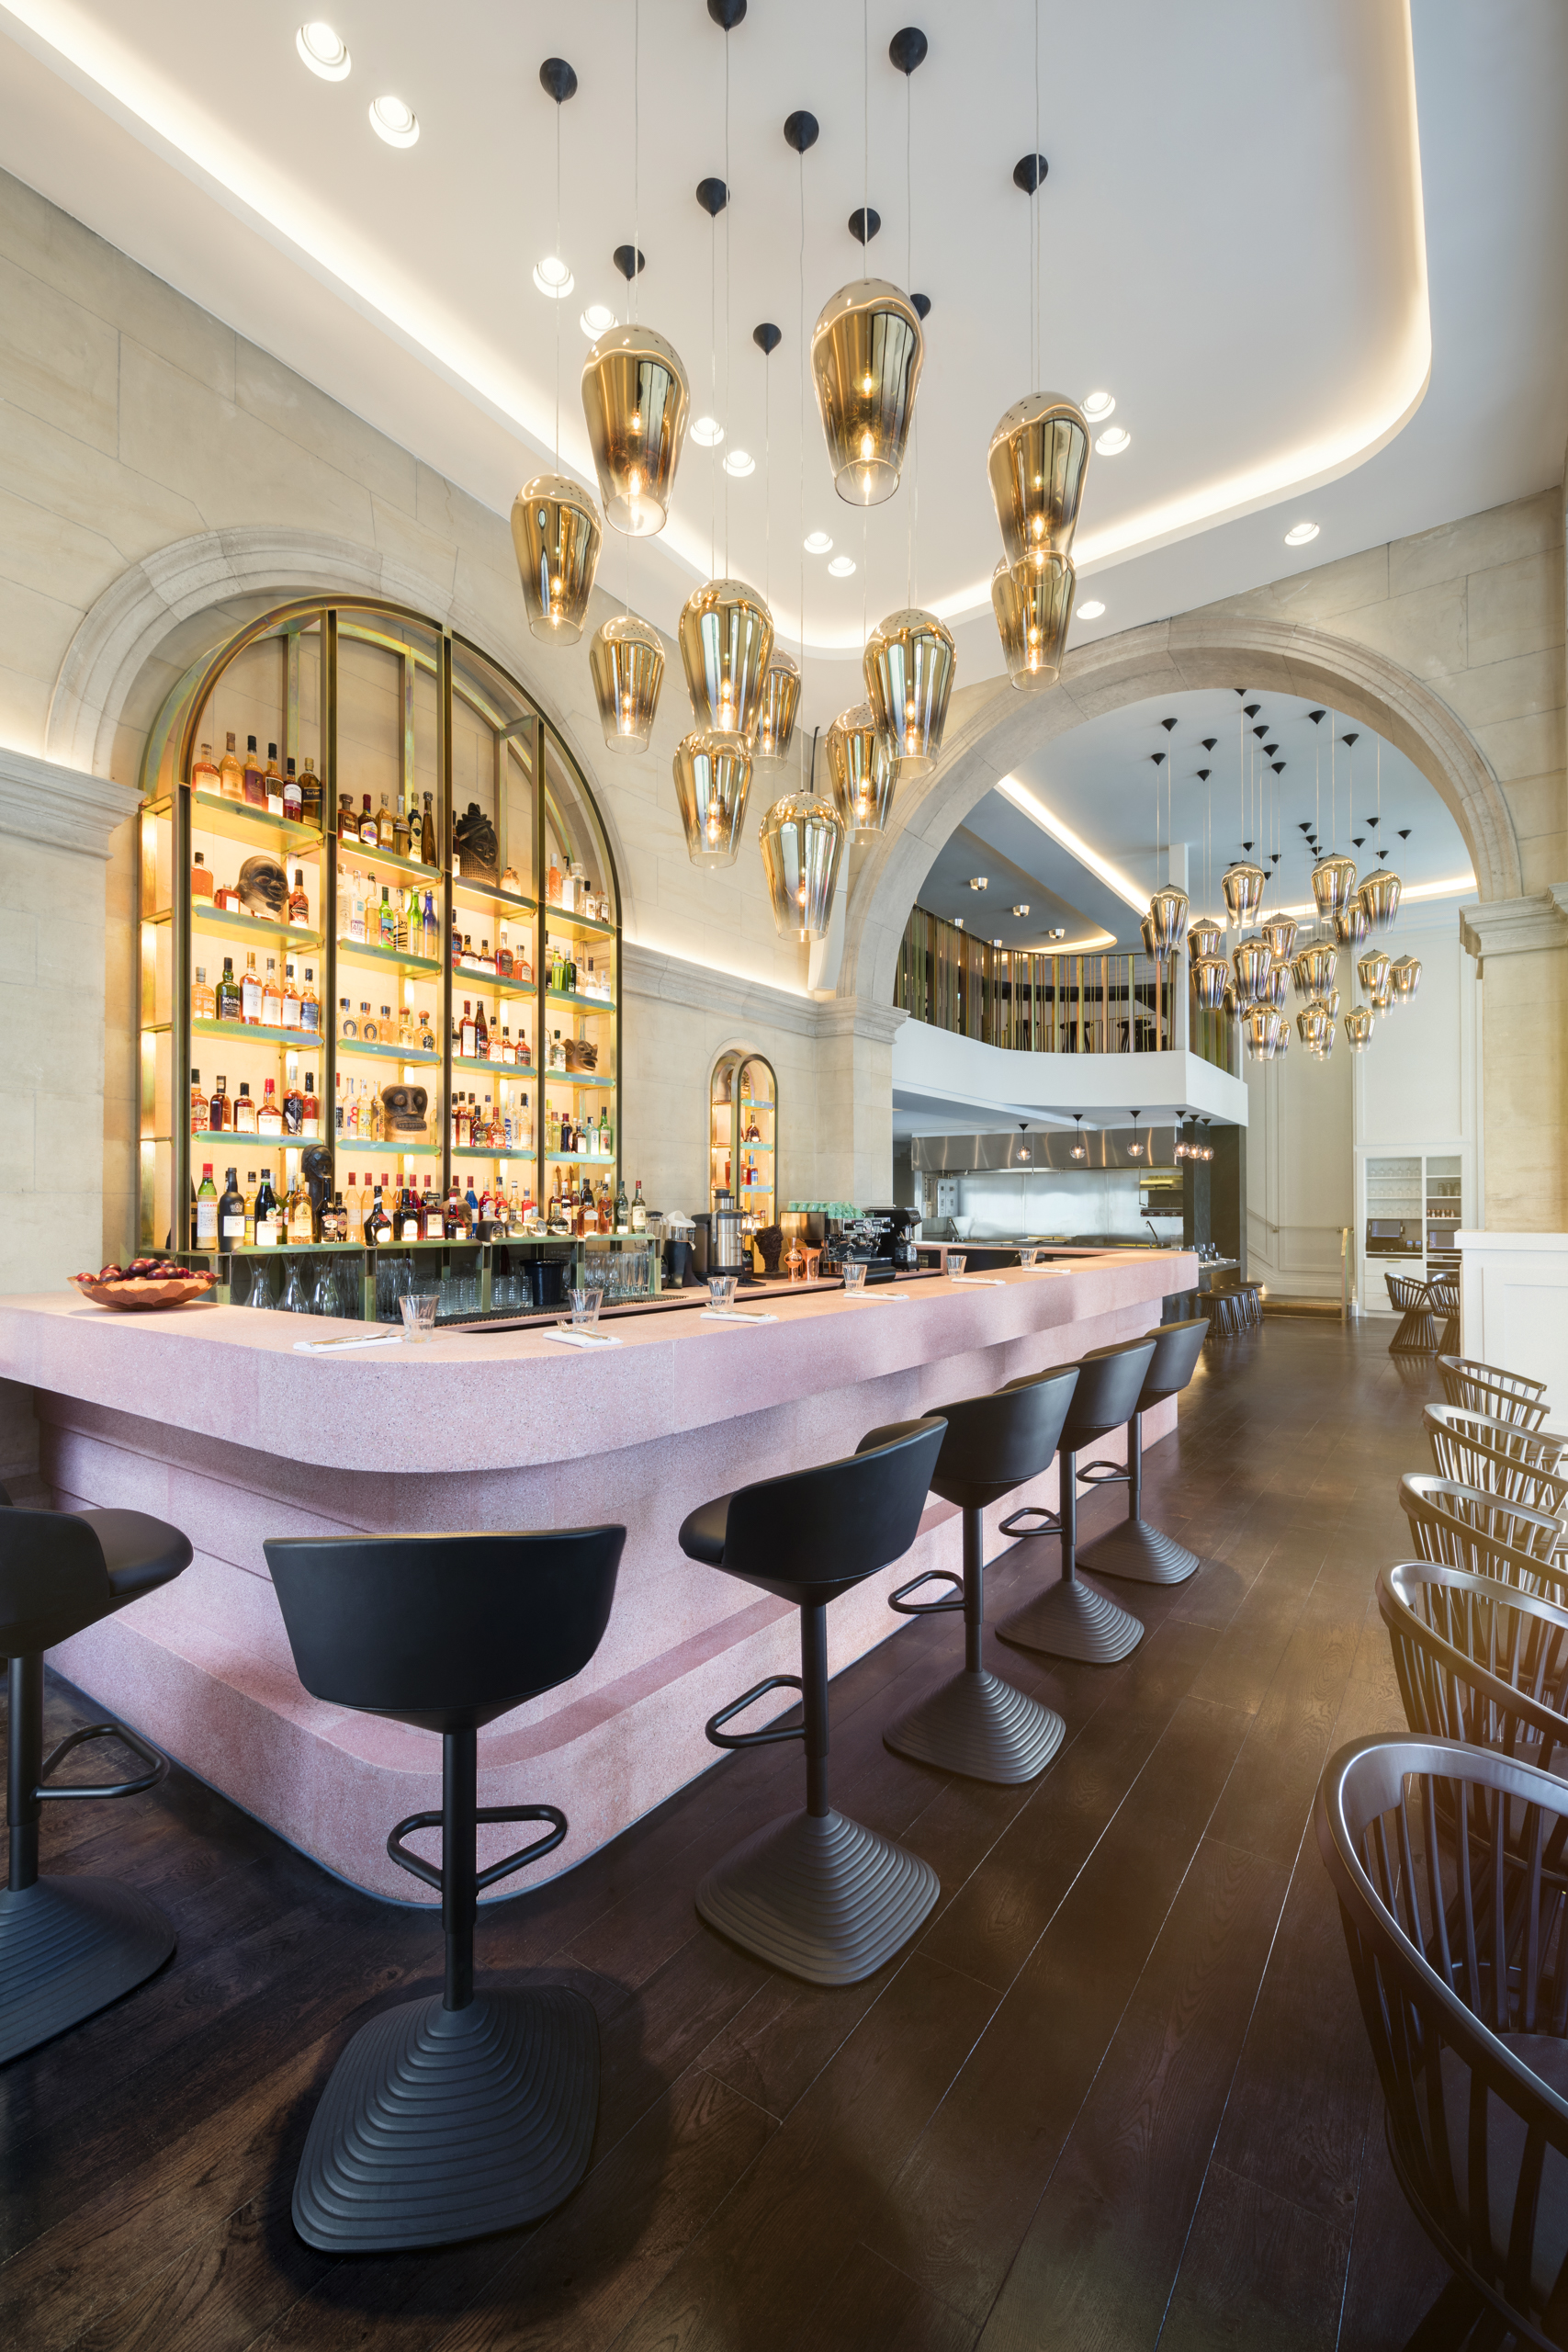 Tom dixon designs interiors for new london restaurant for Interior design london